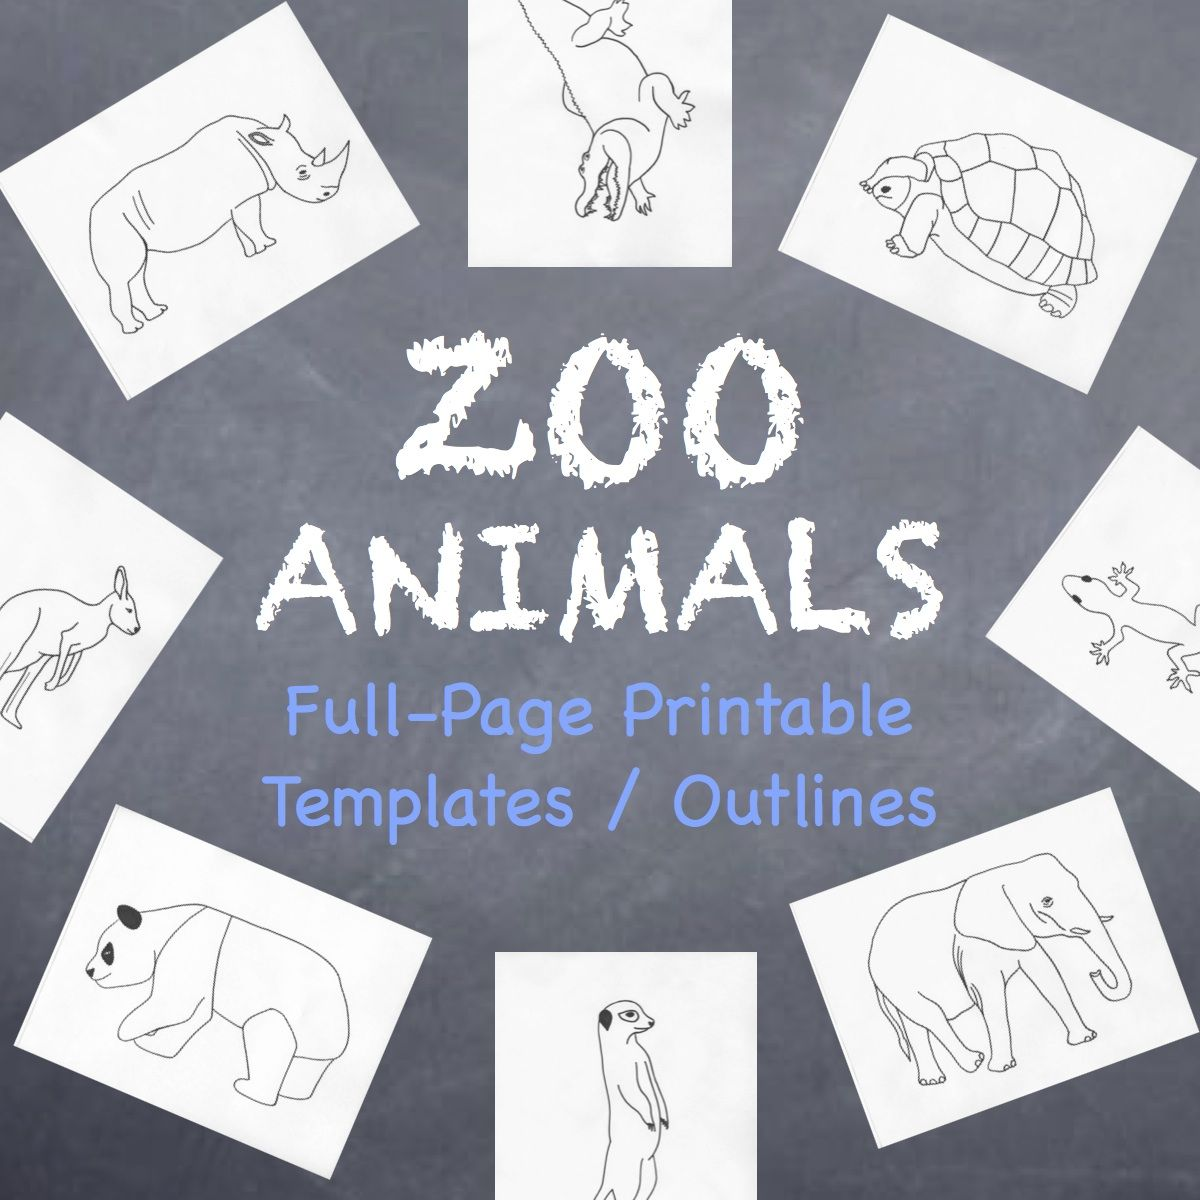 Zoo Animals Printable Full Page Outlines Templates For